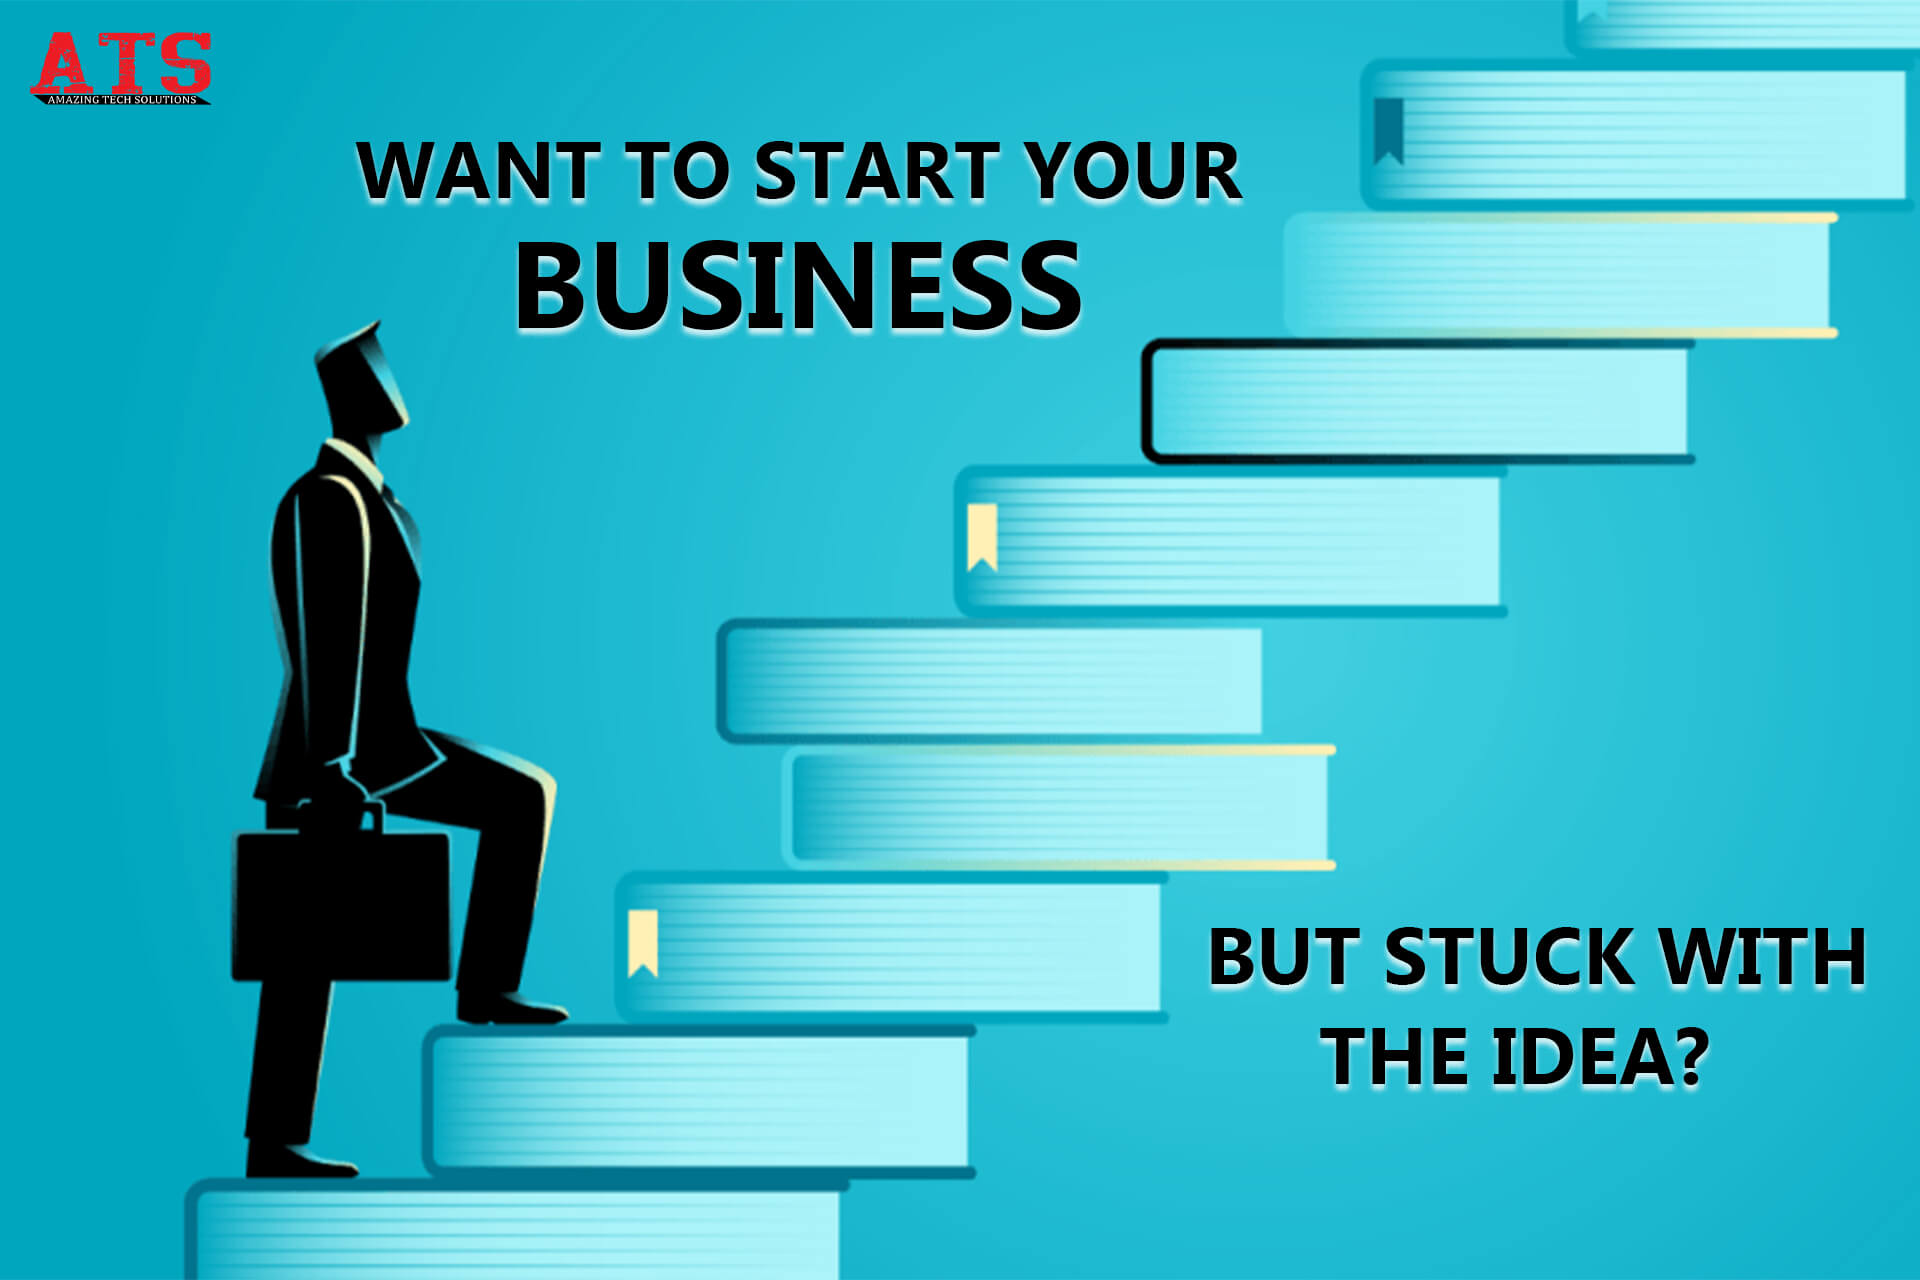 Need any idea to start your business